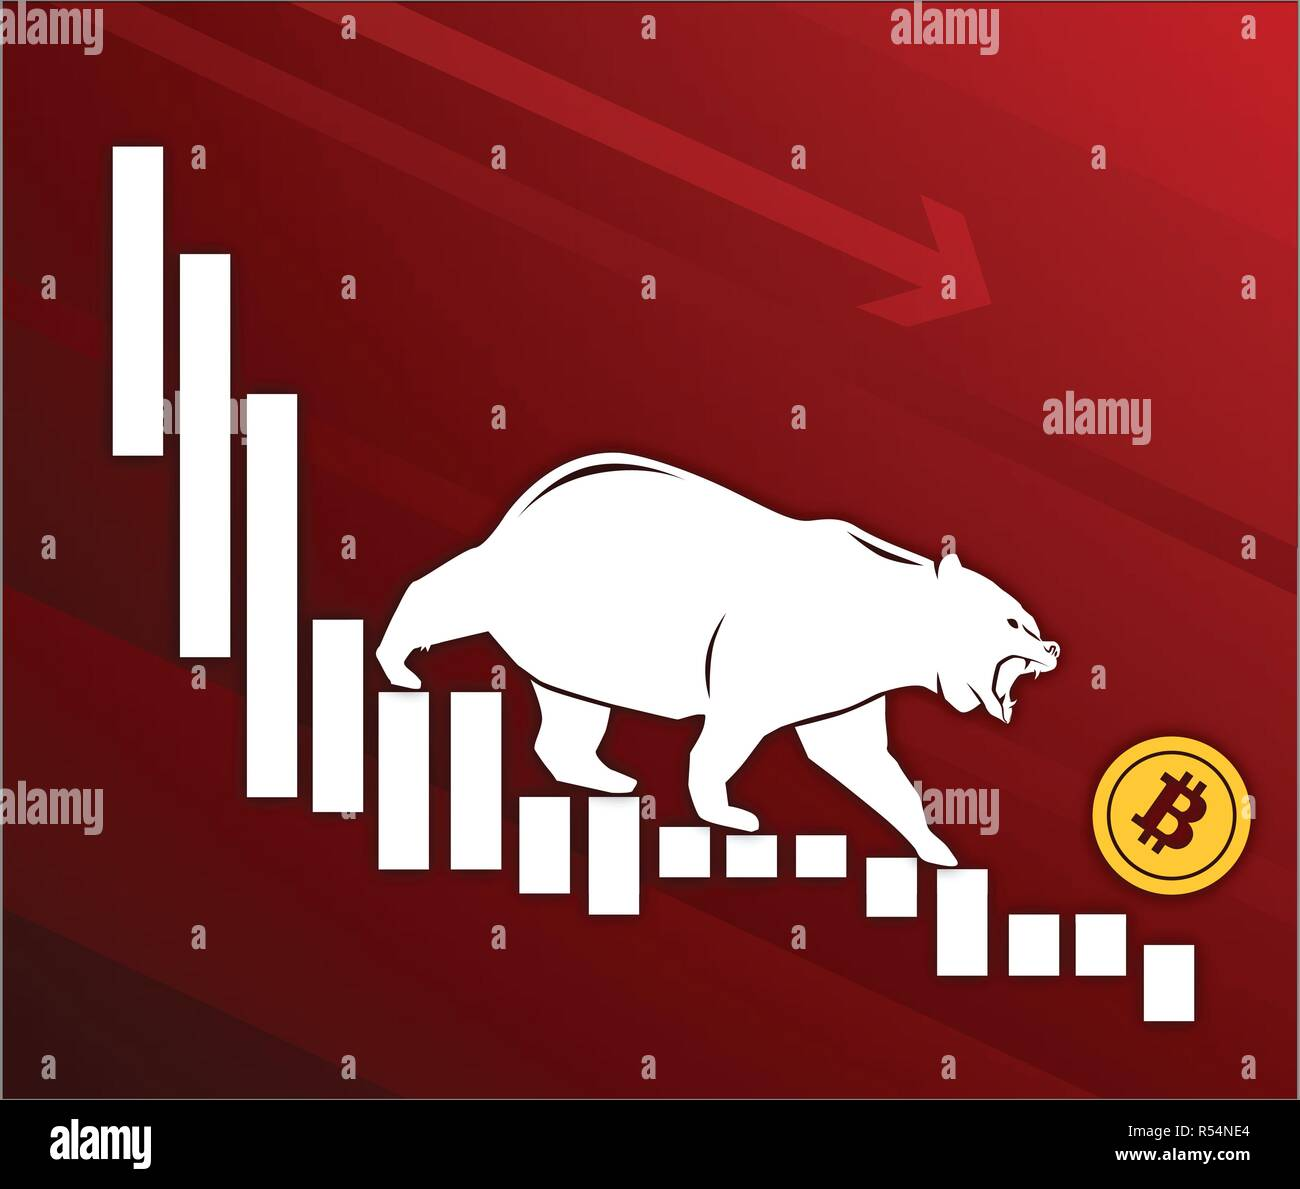 Bear moves Bitcoin down on graph, negative cryptocurrency market, red background Stock Vector